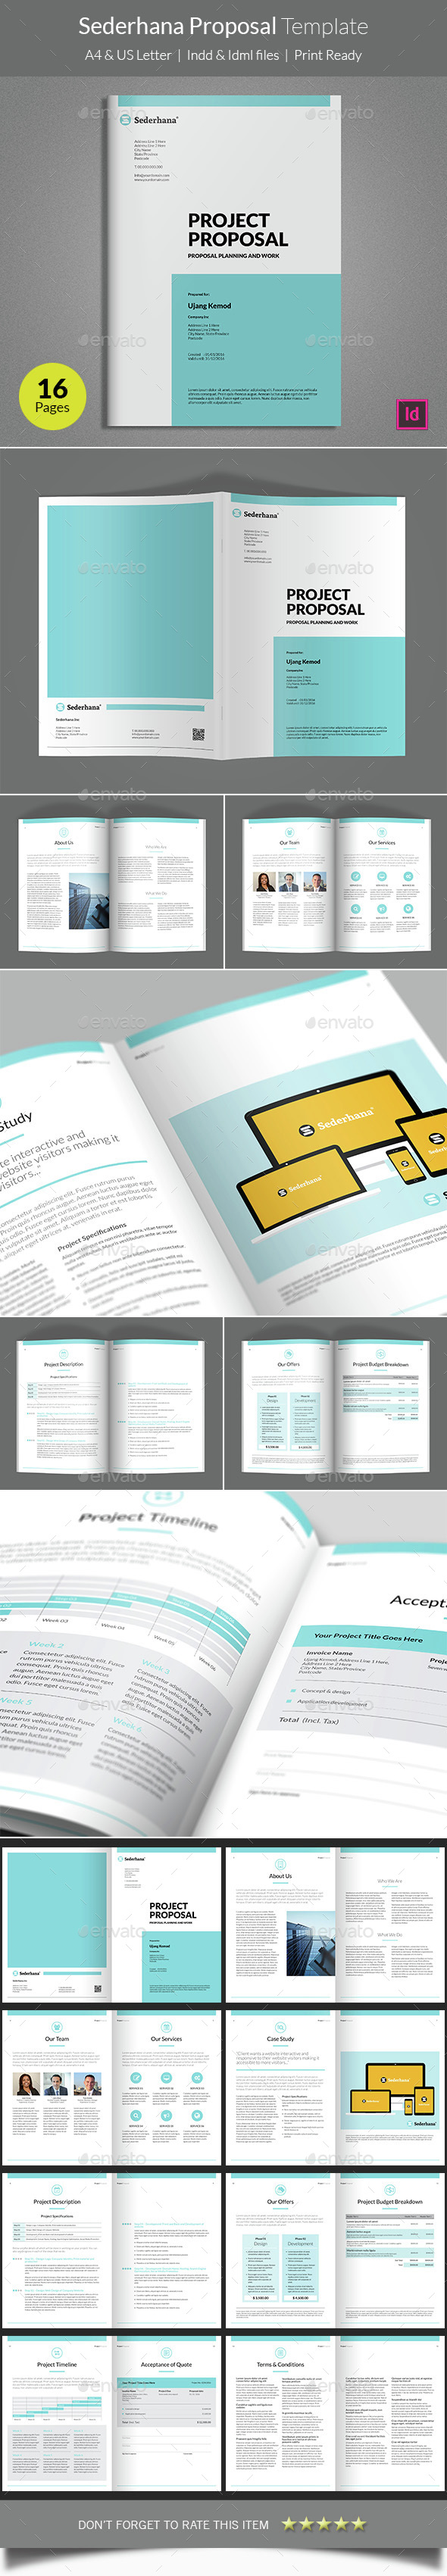 Sederhana Proposal Template - Proposals & Invoices Stationery